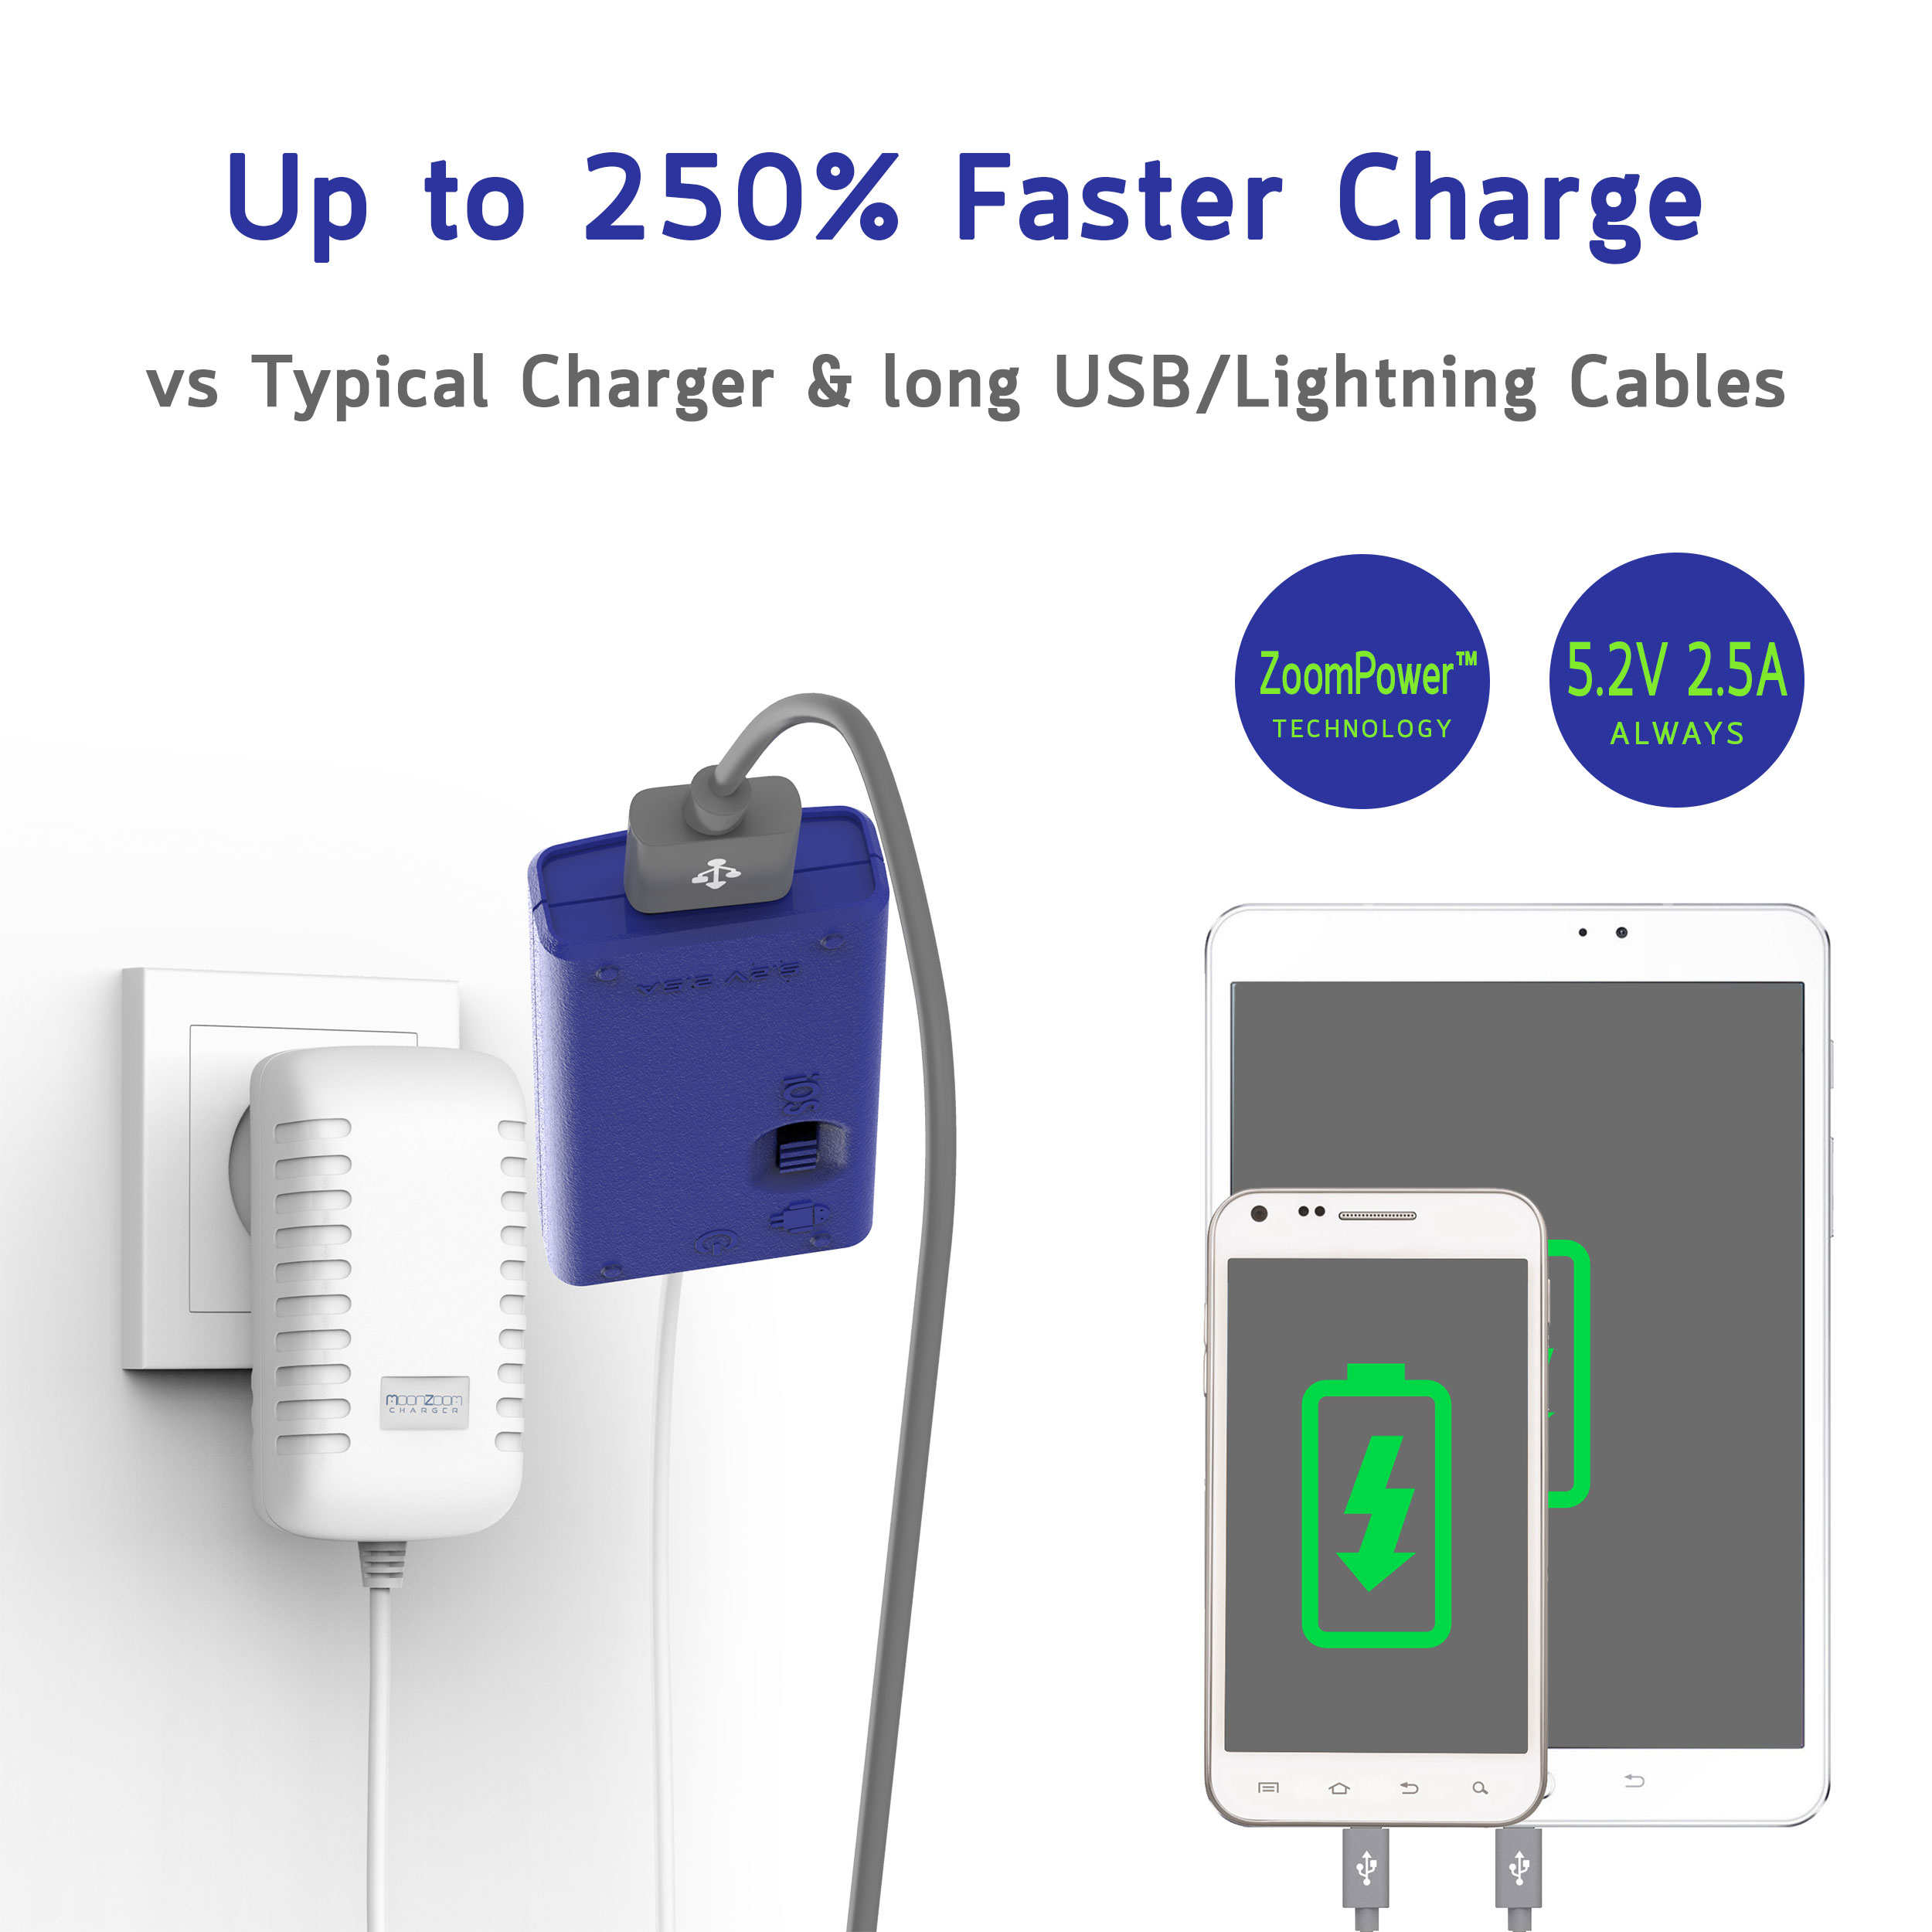 INFOGRAPHIC-05-Fast-Charge-MJ-new01